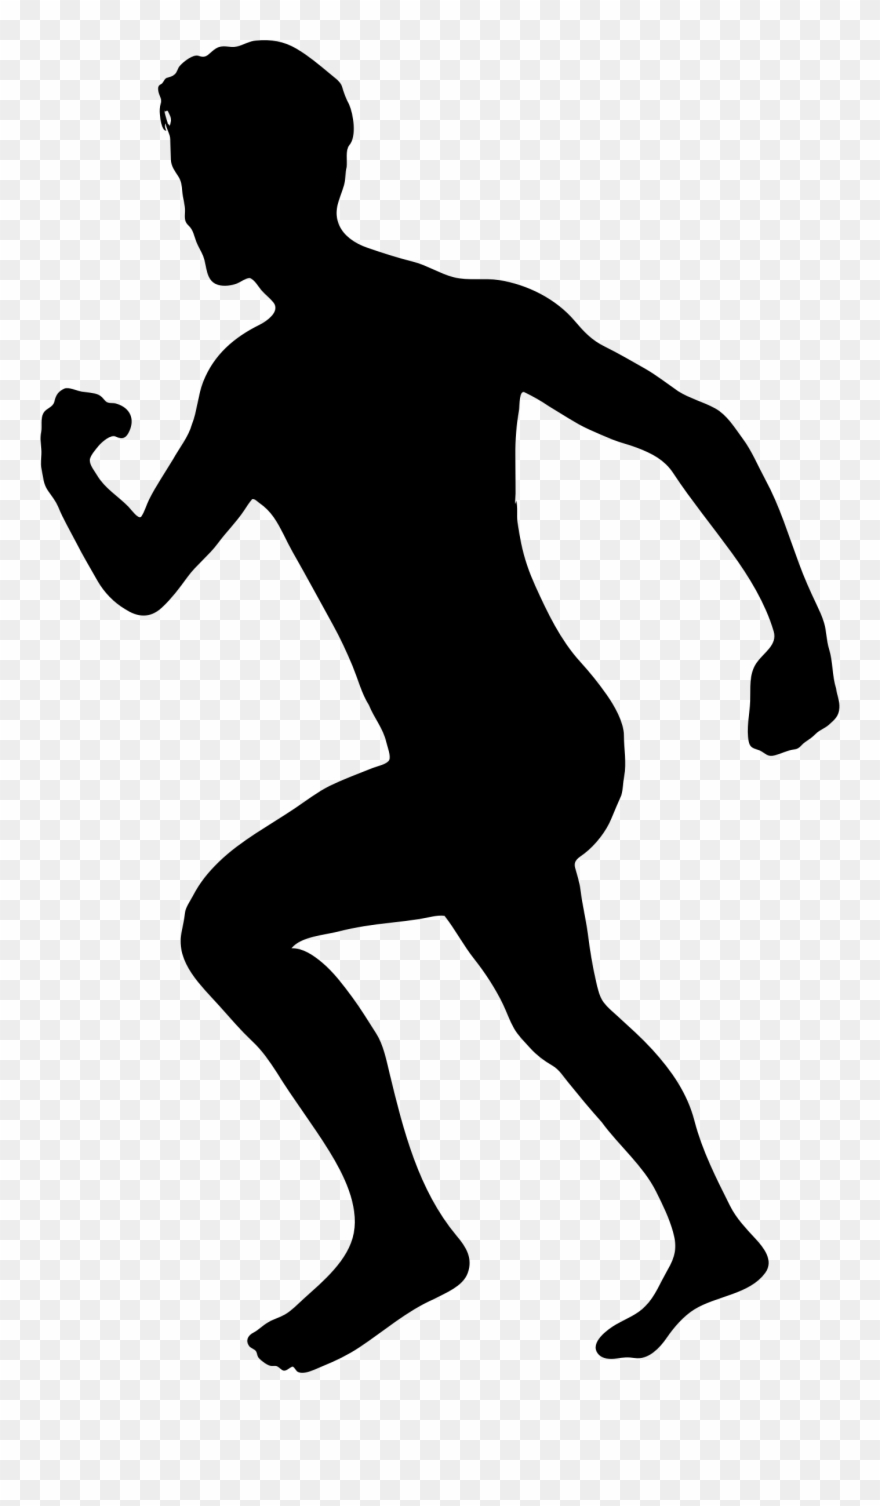 Free Clip Art Of Person Running Clipart The.